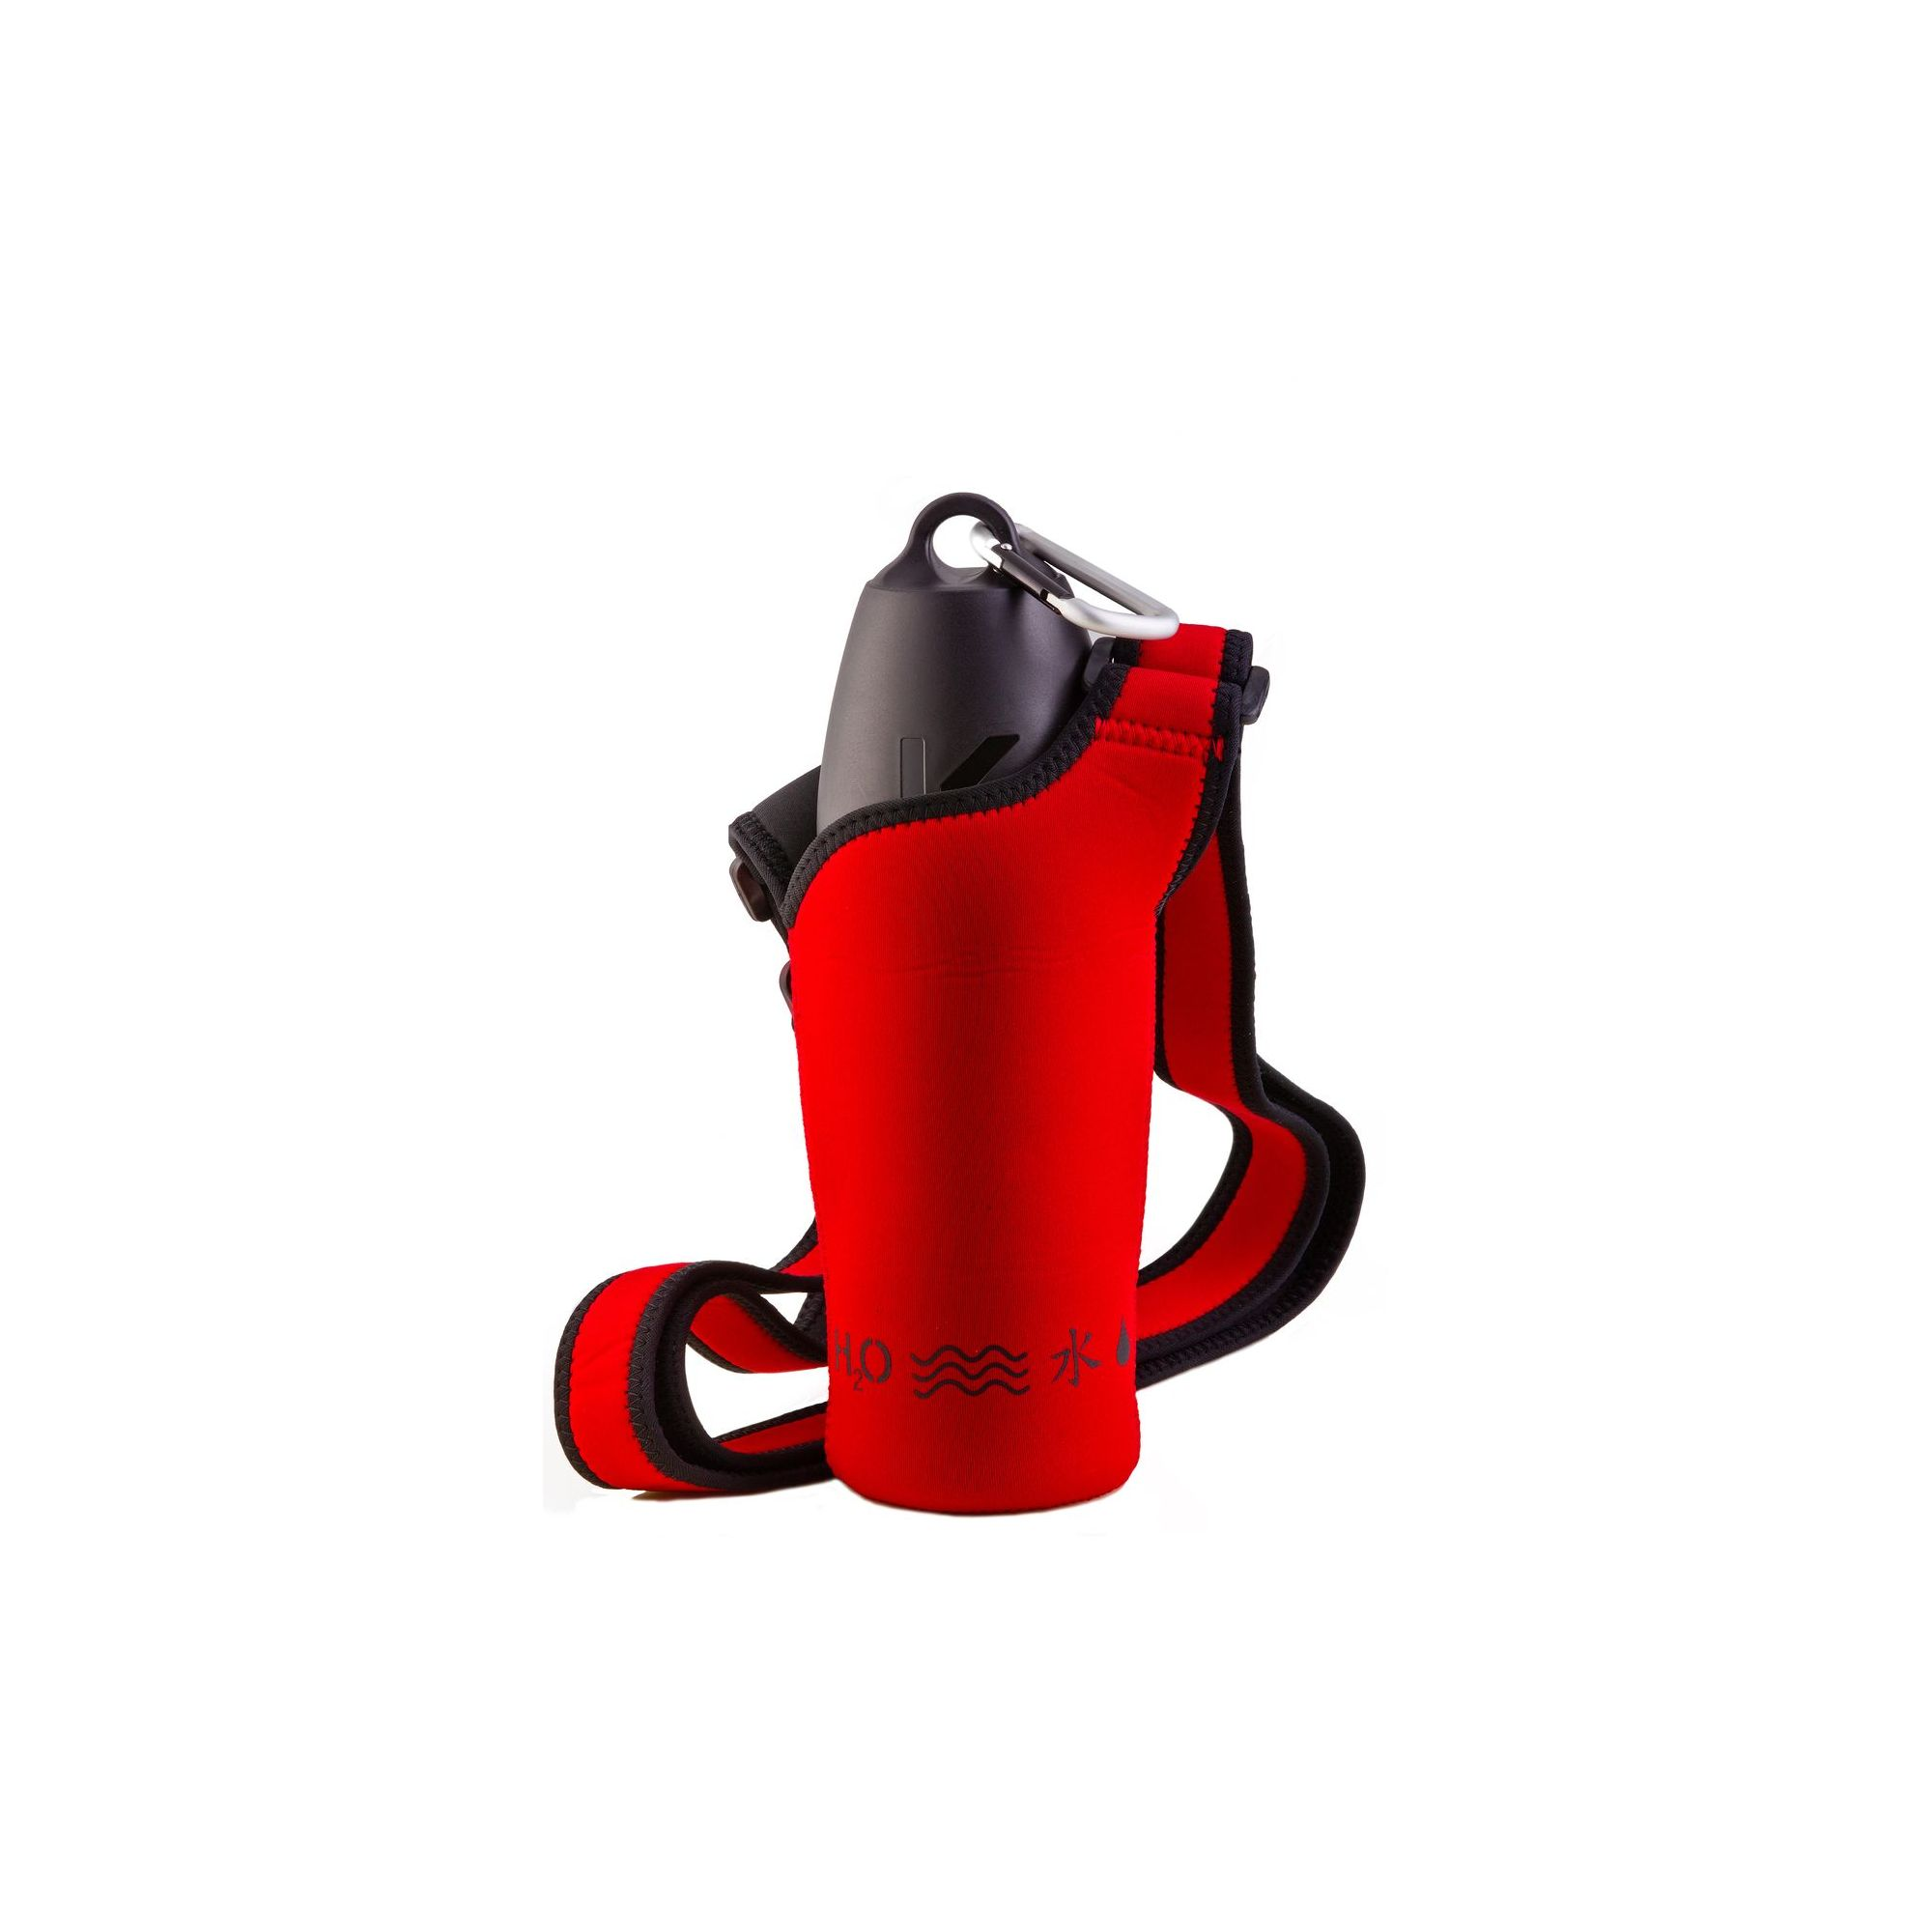 PJ Pet Products Neosling Adjustable Bottle Holder in Racecar Red